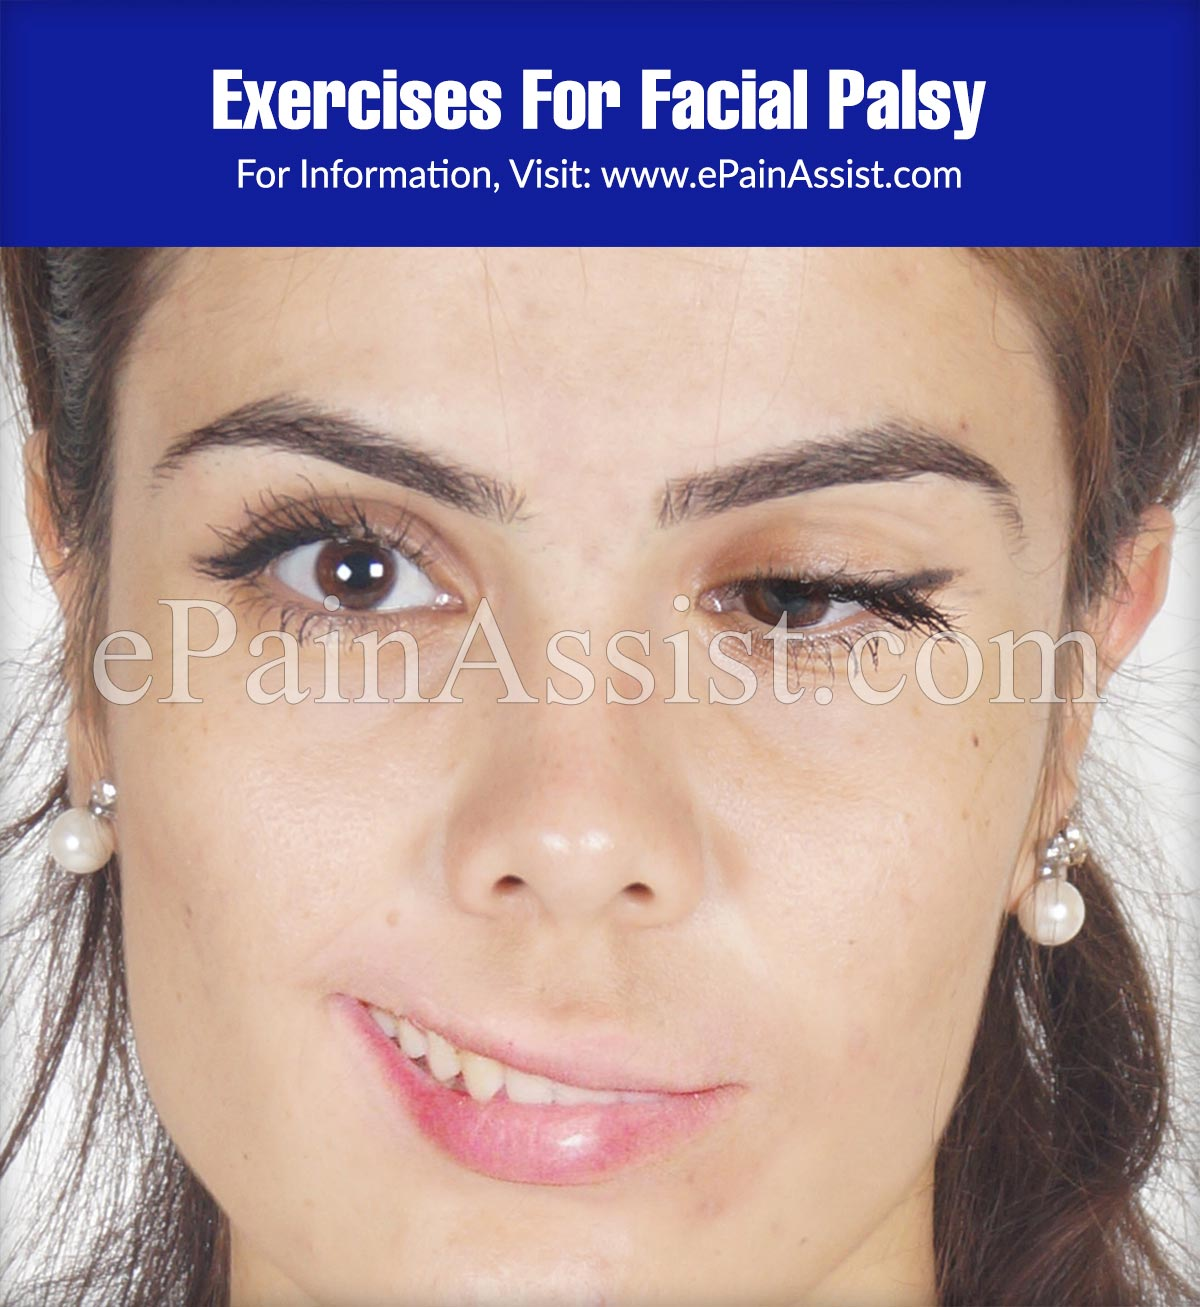 Exercises For Facial Palsy